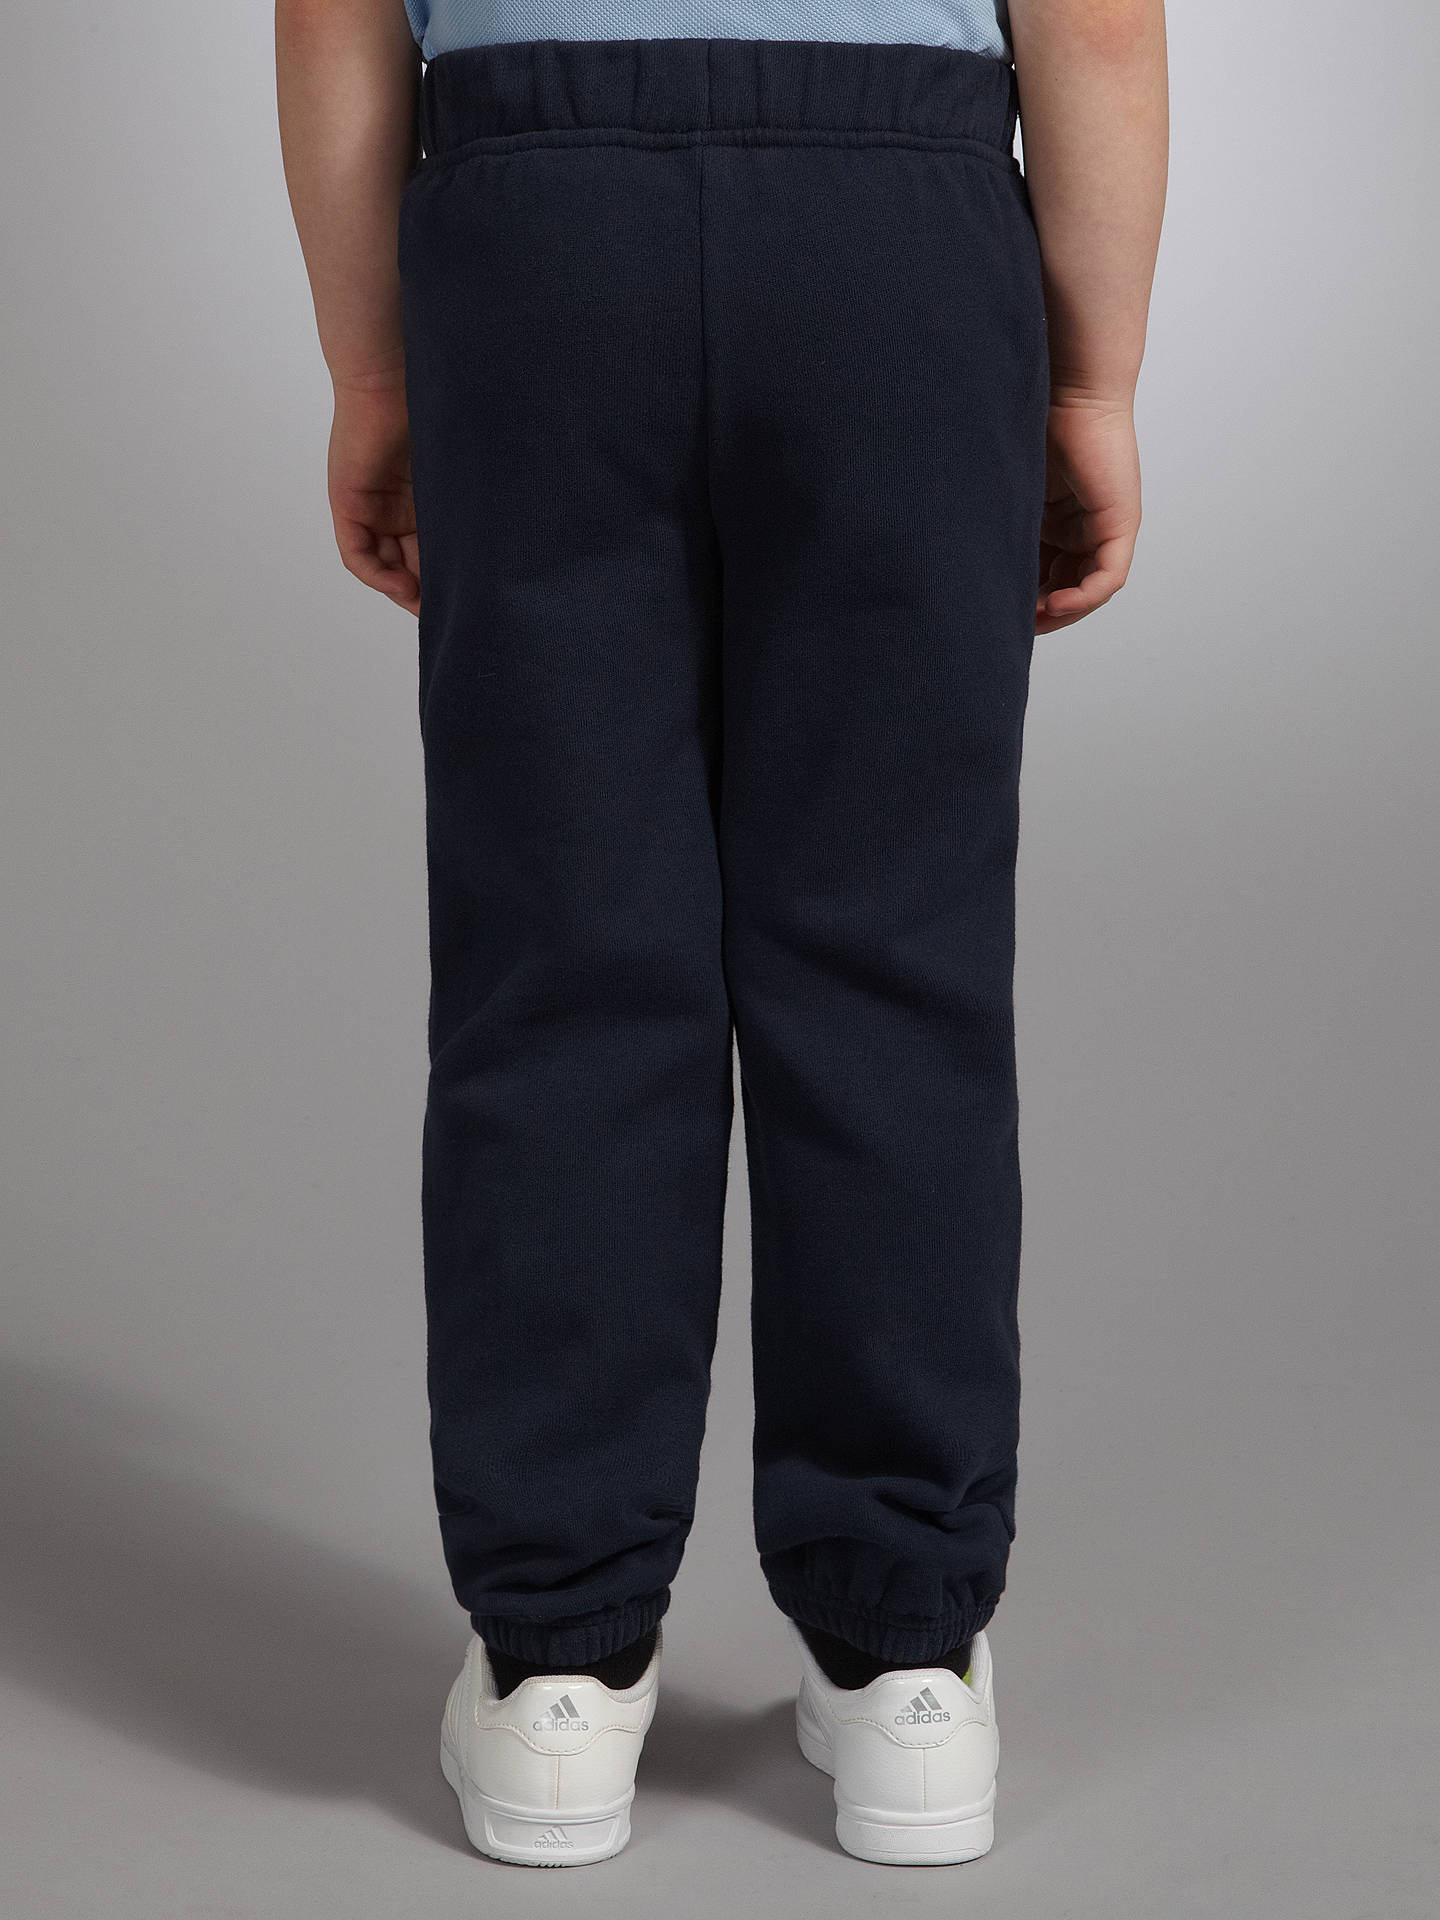 BuyJohn Lewis & Partners School Jogging Bottoms, Navy, 3-4 years Online at johnlewis.com